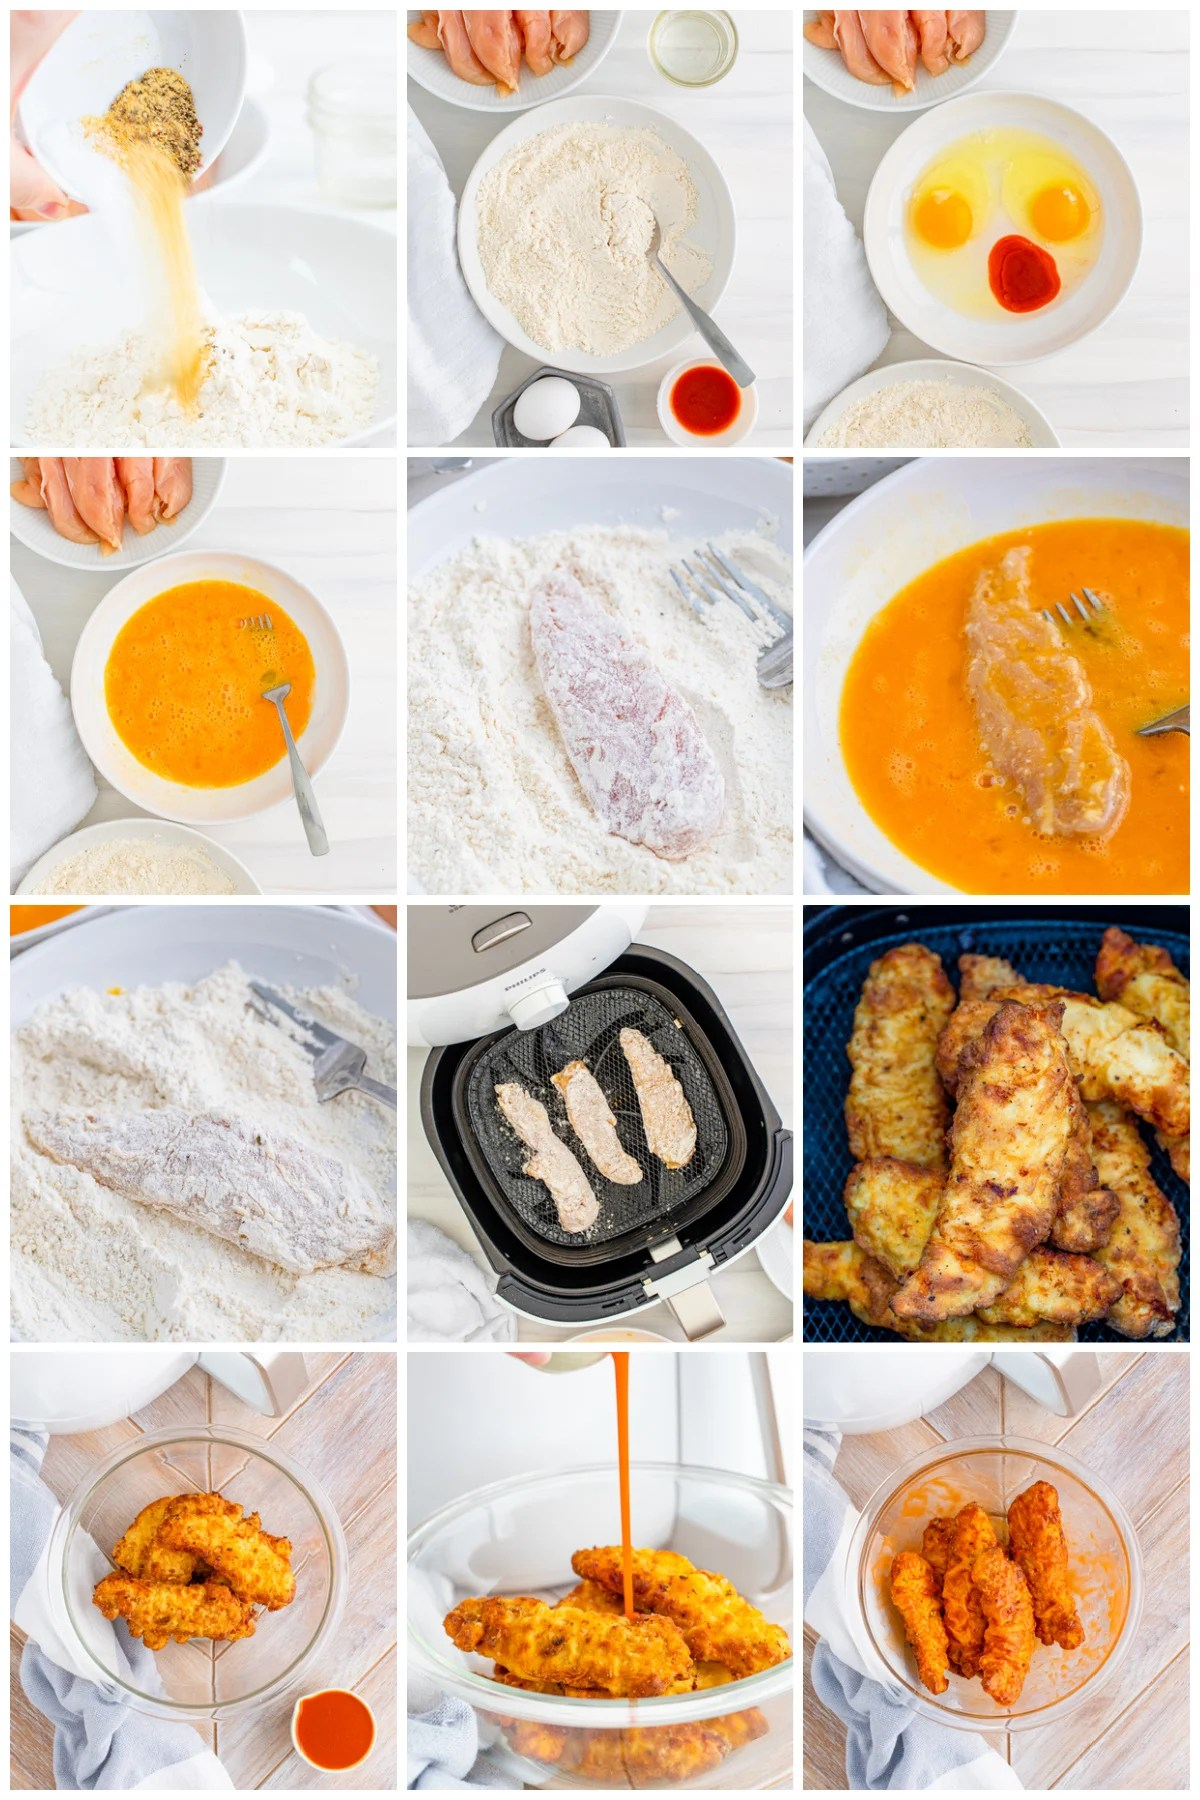 Step by step photos on how to make Air Fryer Buffalo Chicken Tenders